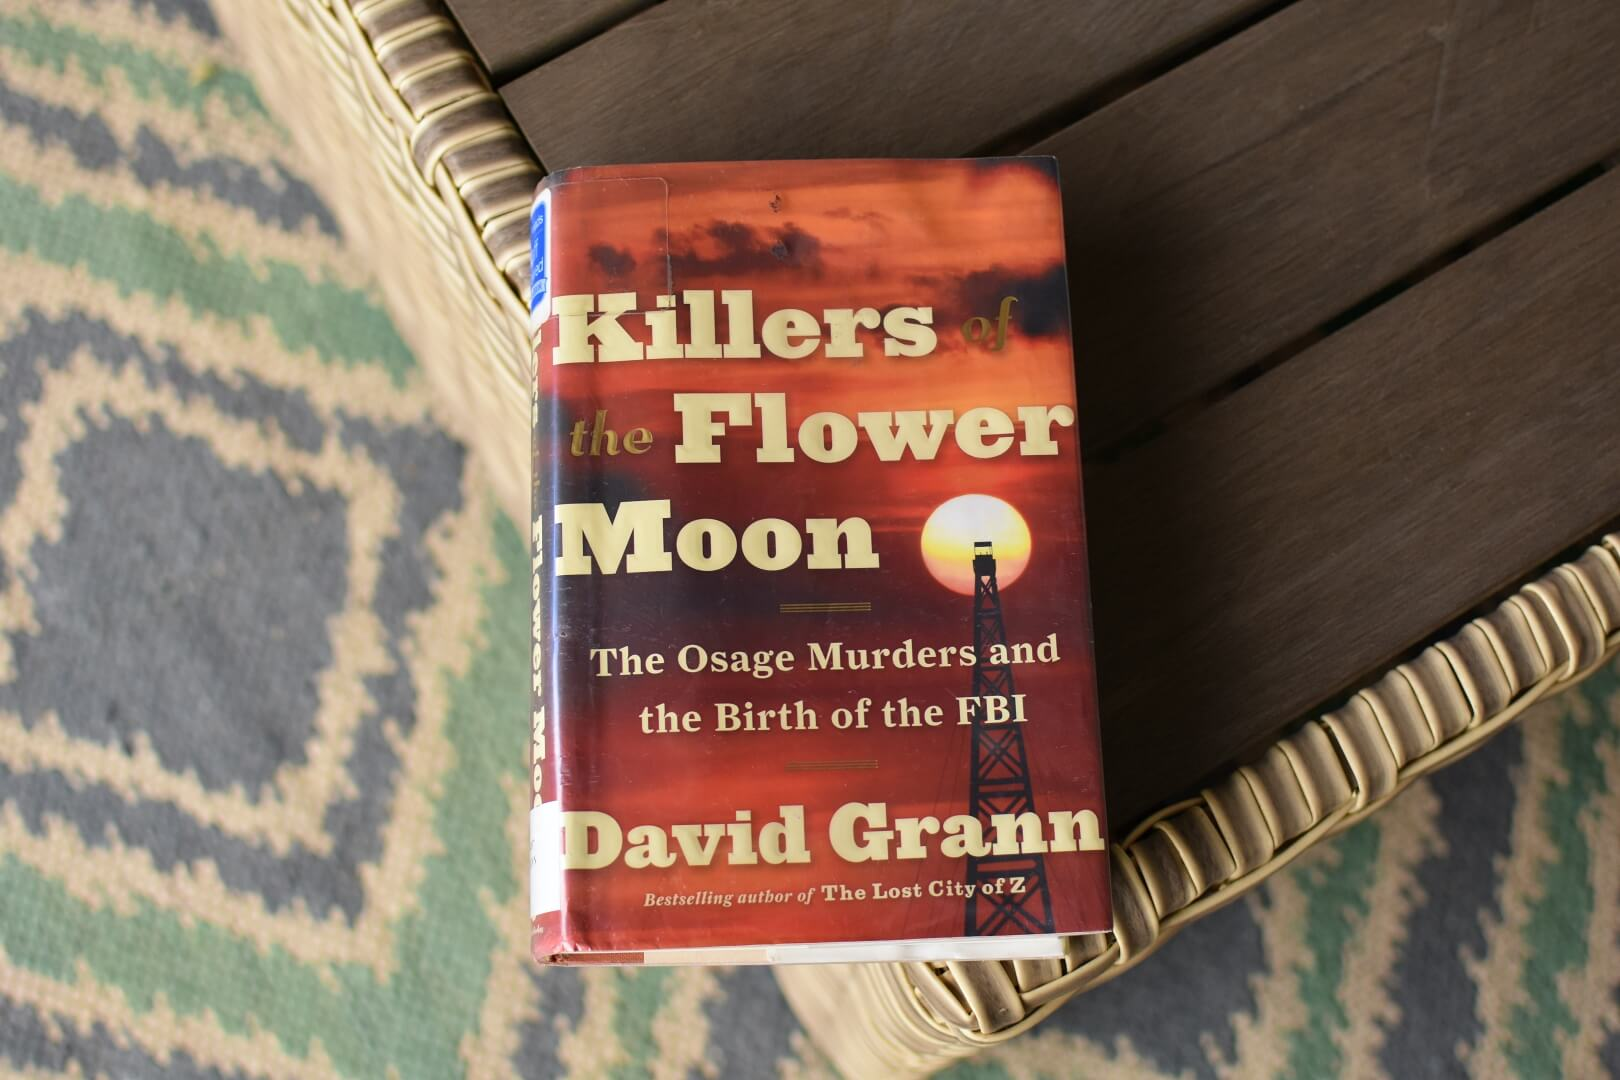 review killers of the flower moon - book club chat